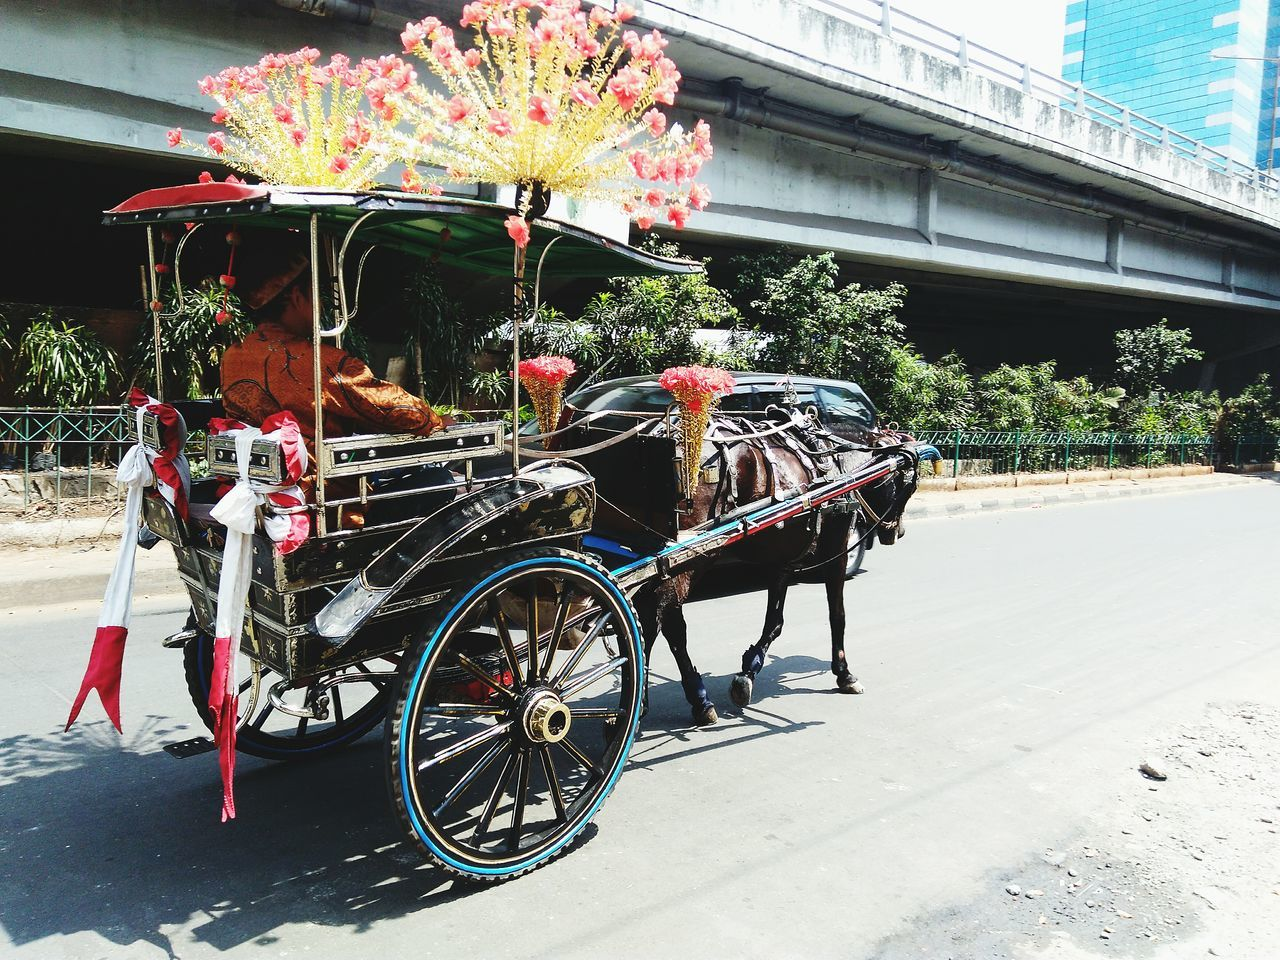 Transportation Delman Holidays ☀ Street Life Streetphoto Street Photograpy Horse And Carriage